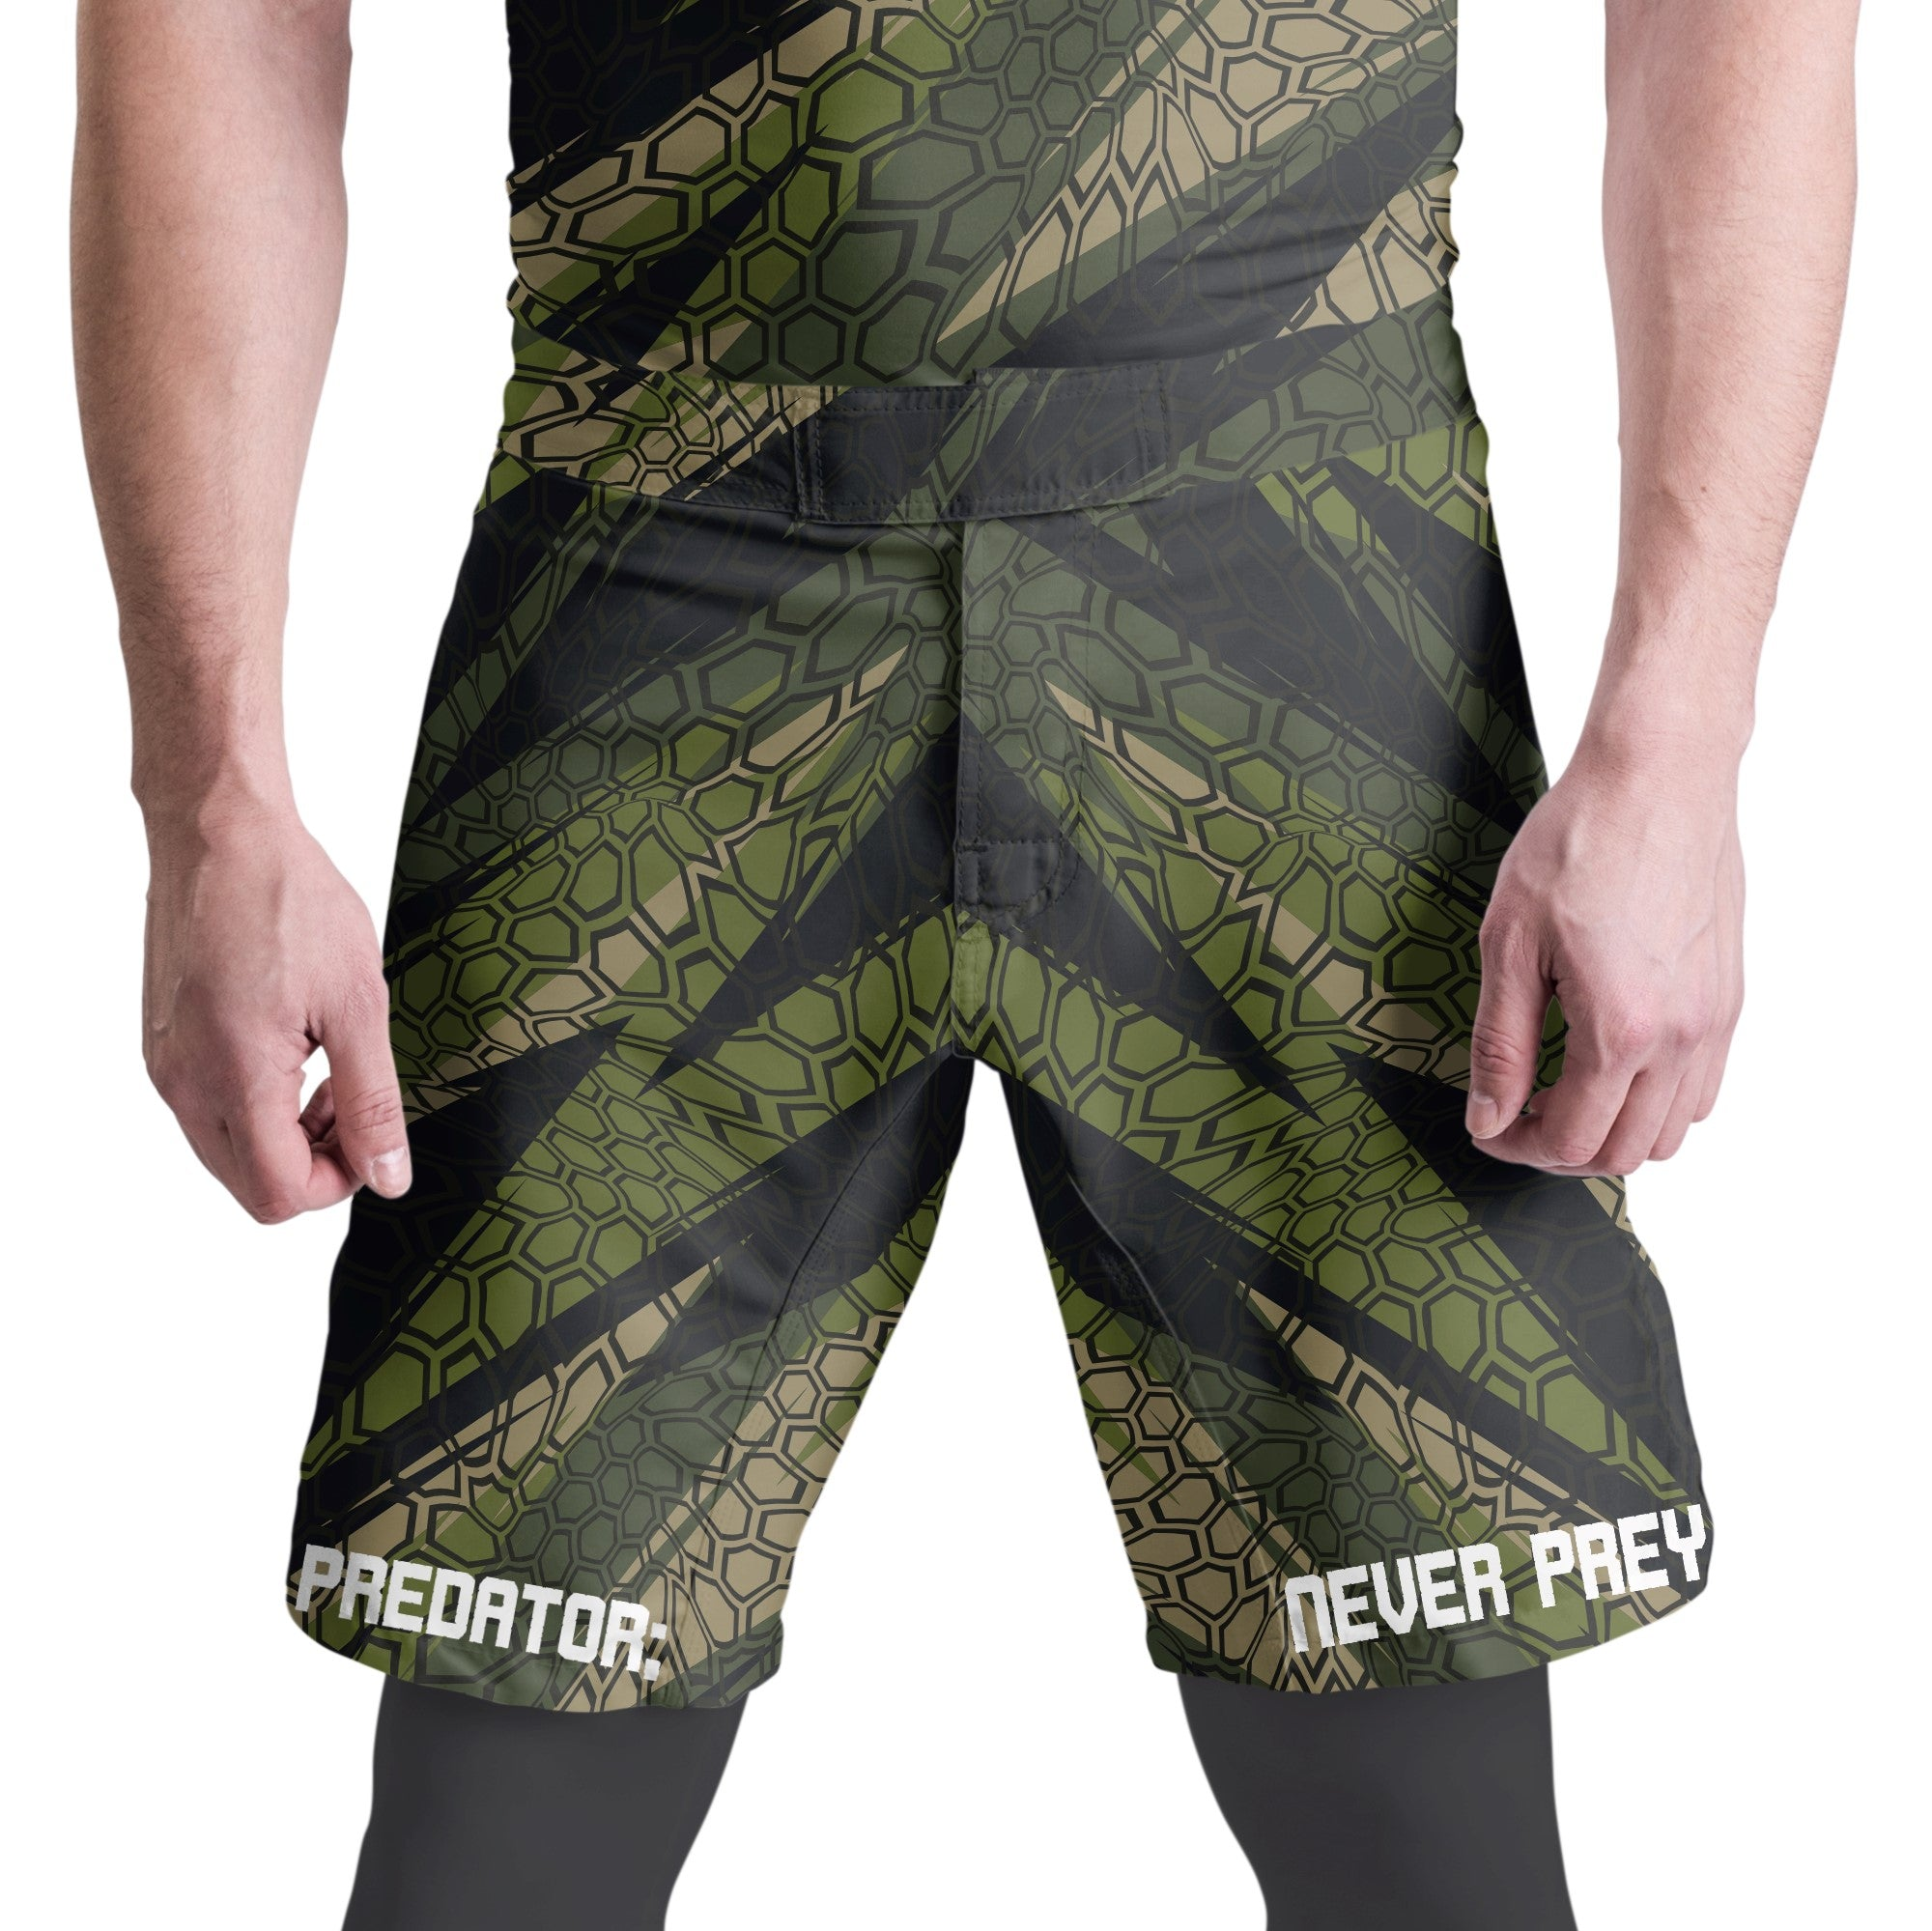 Predator Fight Shorts - Front - Zenko Fightwear